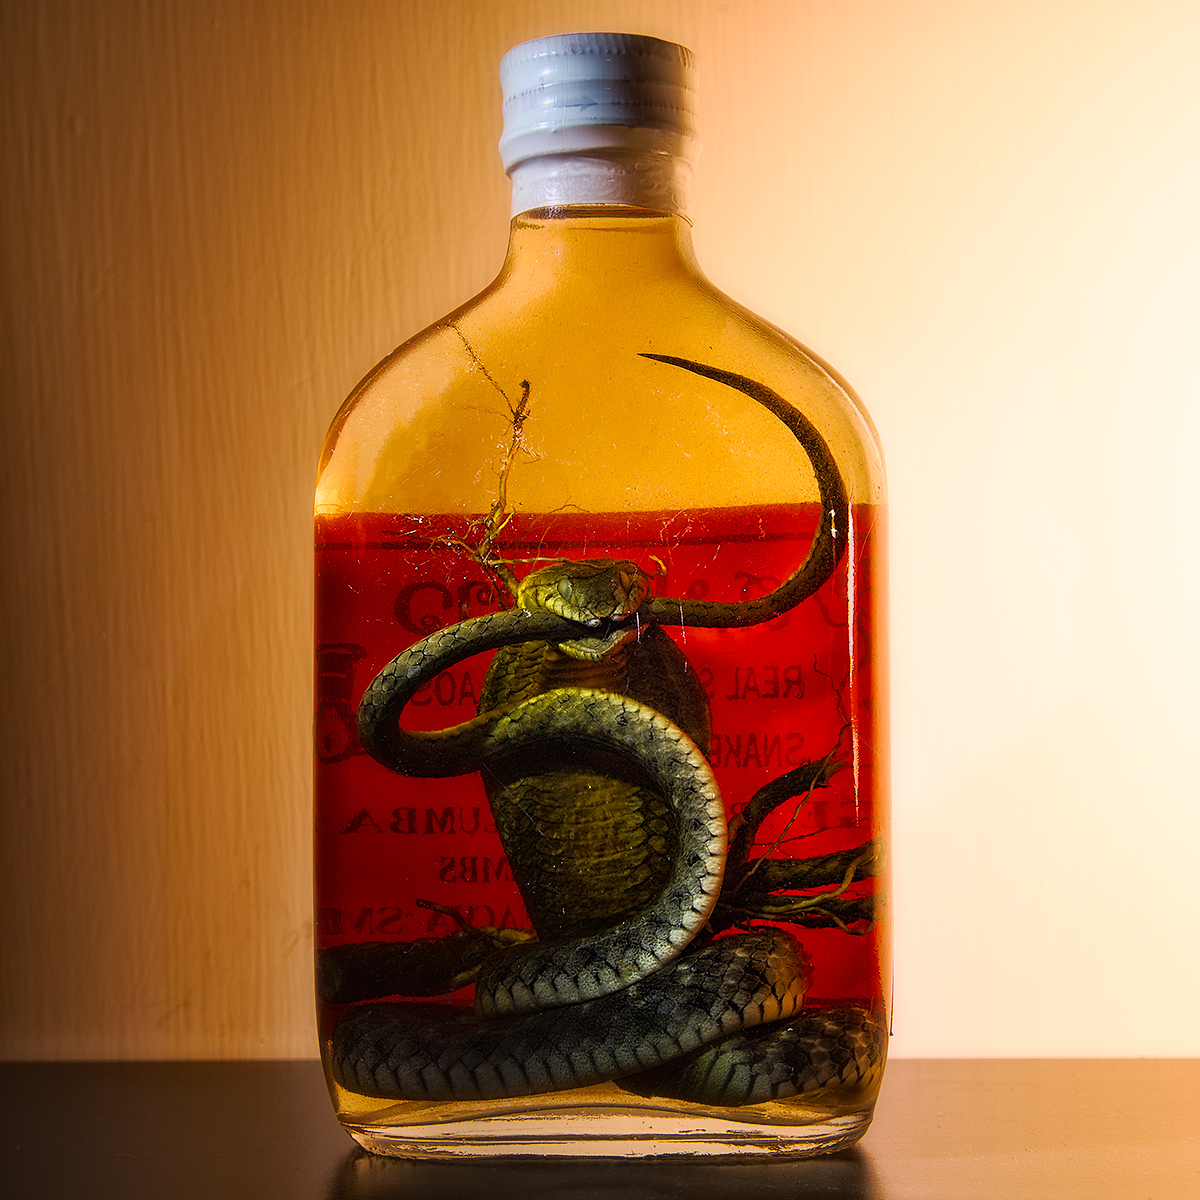 SNAKE WHISKY - RHEUMATISM, LUMBAGO - TWICE A DAY BEFORE MEAL